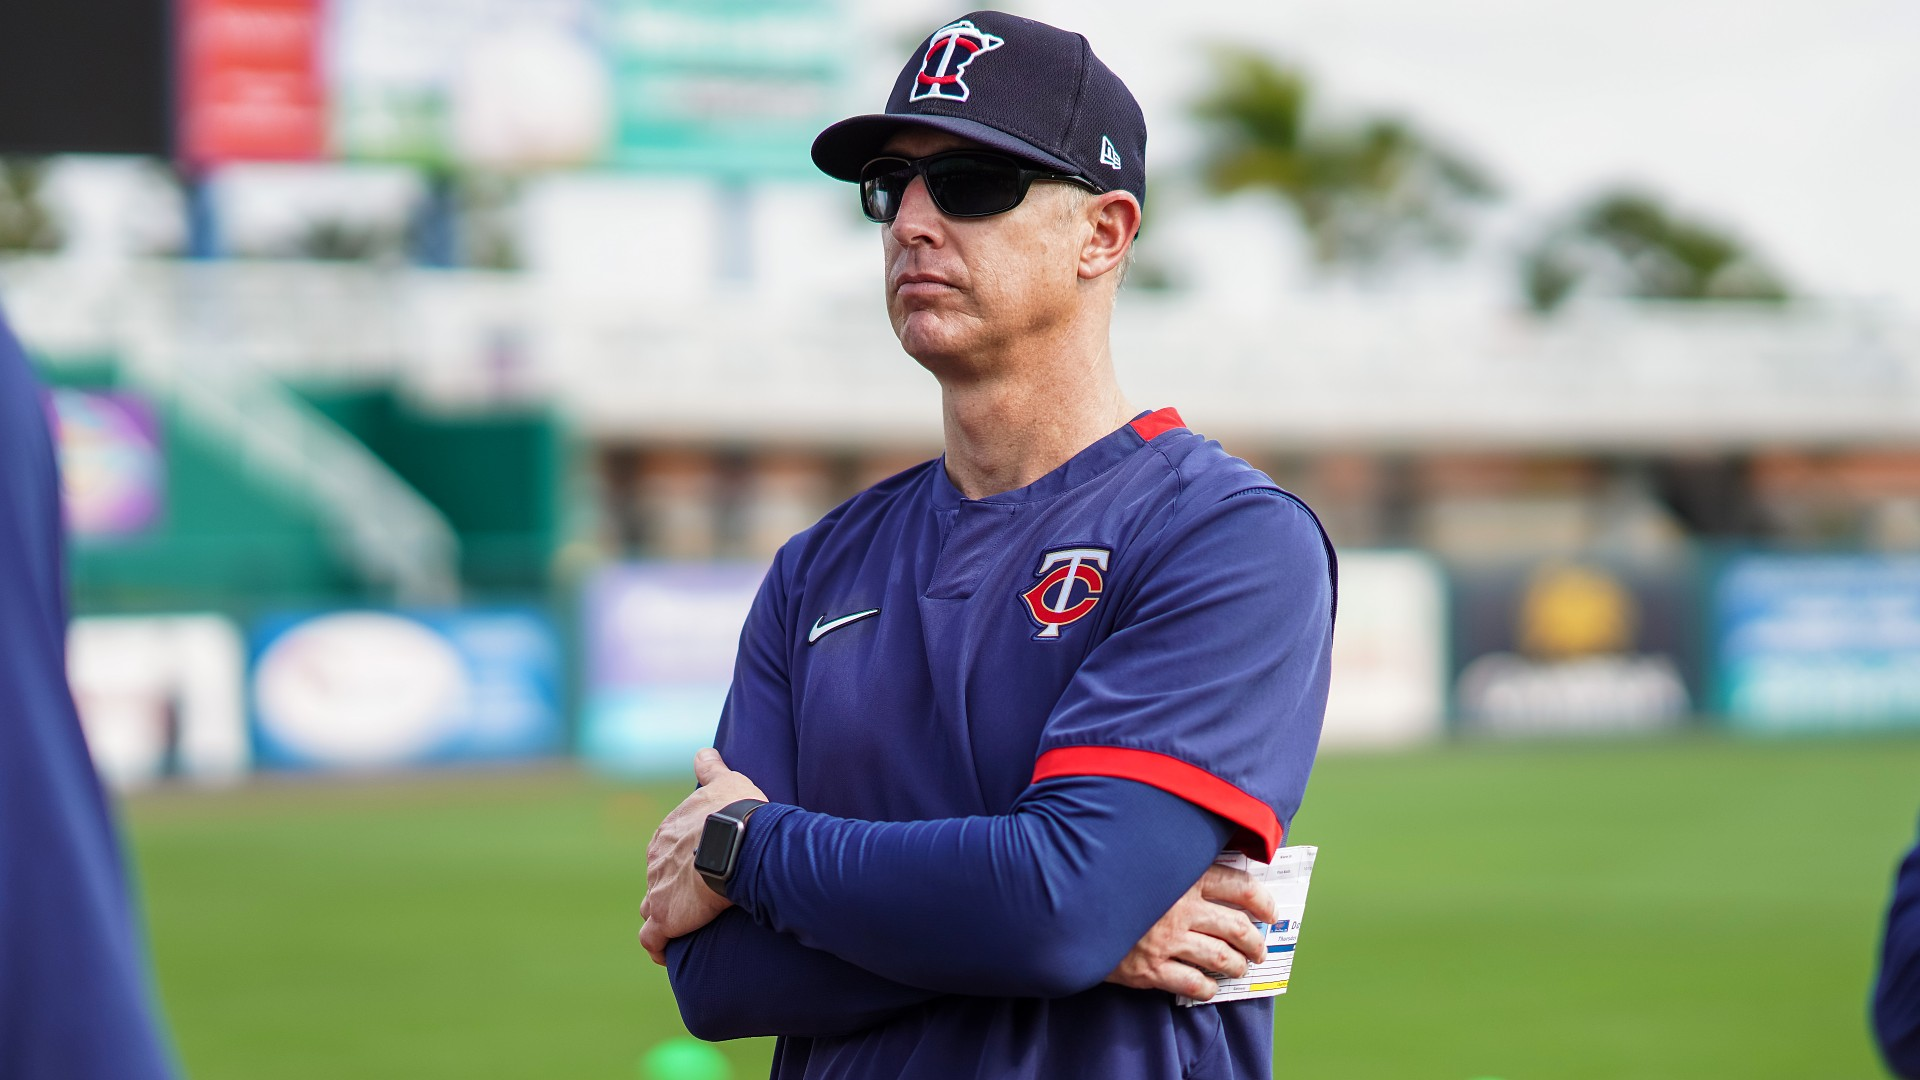 Twin Bank coach Mike Bell died at the age of 46 after a battle with cancer;  the baseball world has mourning